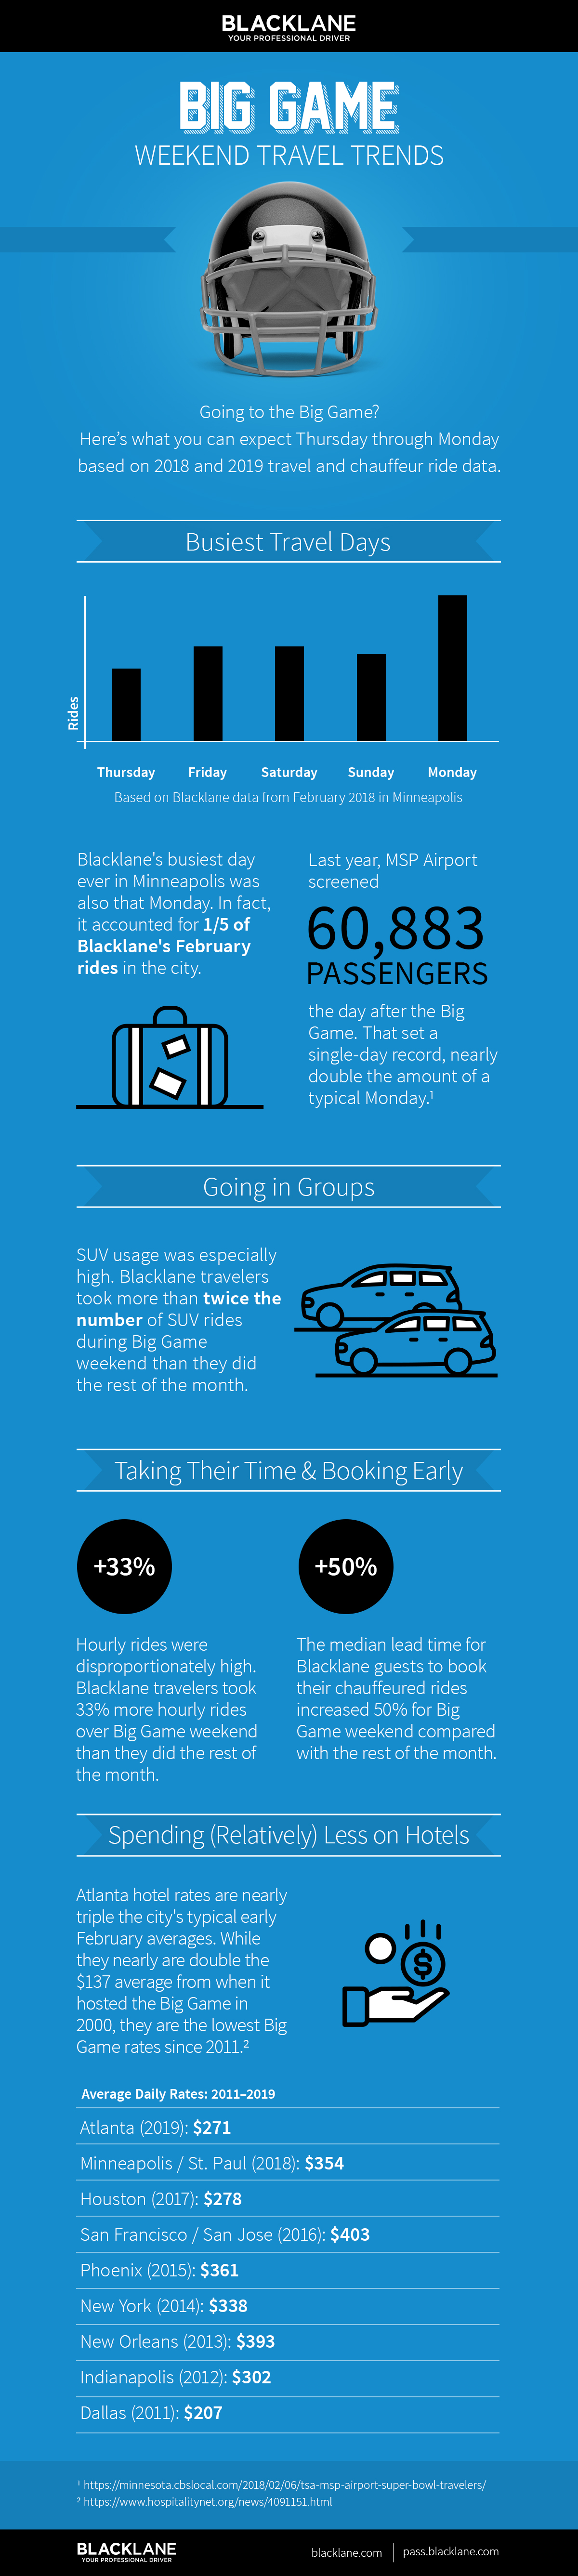 Big Game Weekend Travel Trends Infographic -- Blacklane